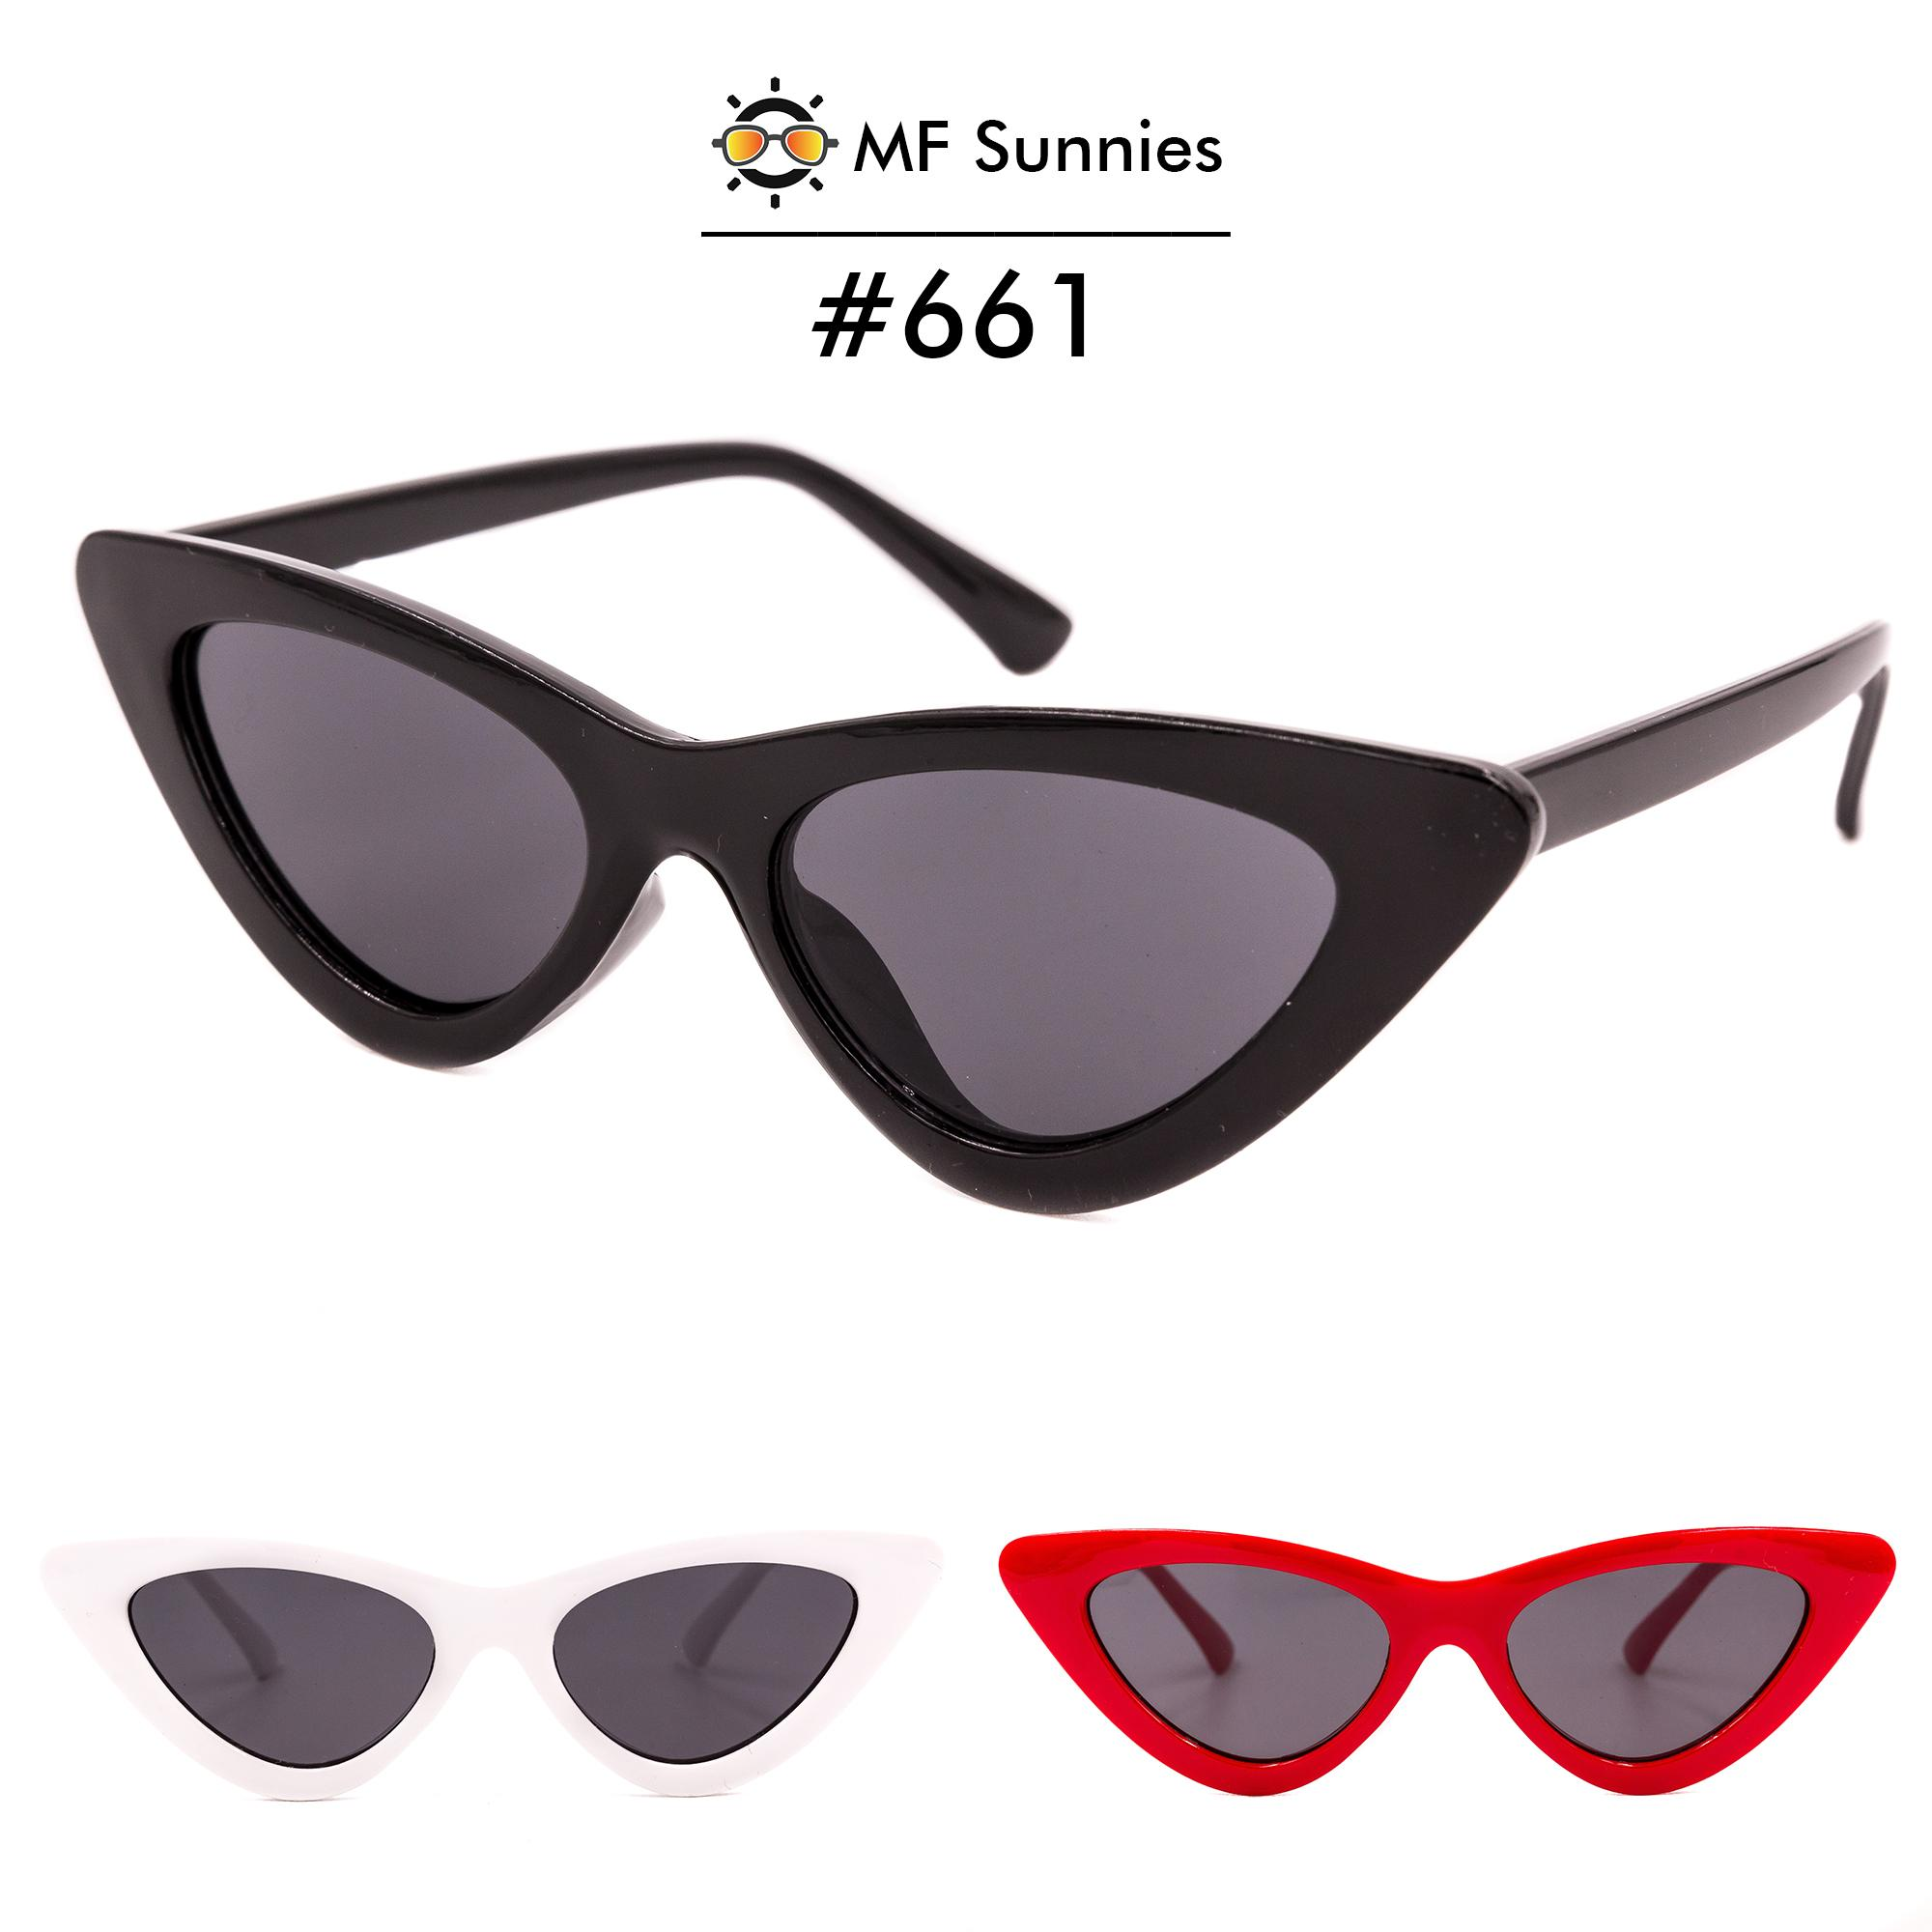 03ce2654ce Sunglasses For Women for sale - Womens Sunglasses online brands ...